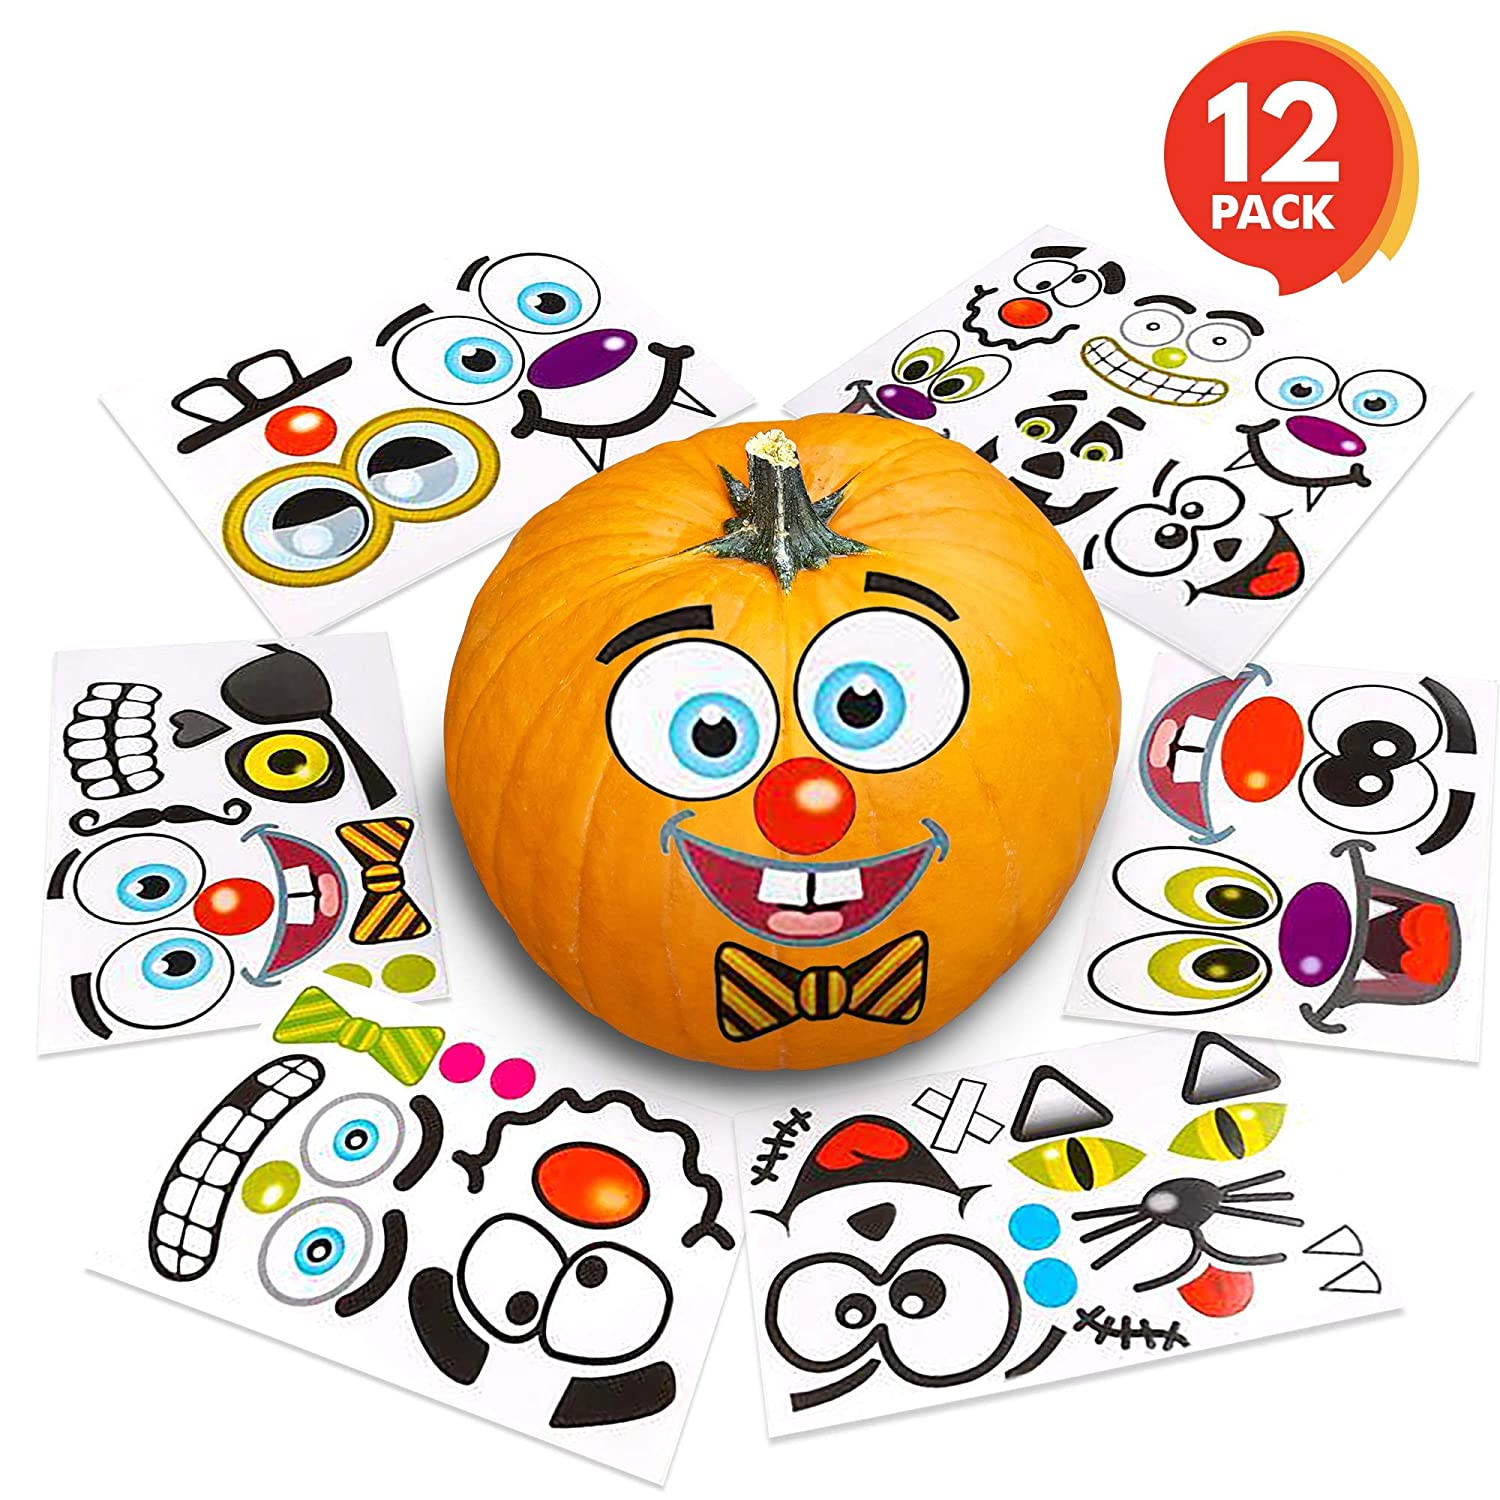 ArtCreativity Halloween Pumpkin Decorating Stickers - 12 Sheets -  Jack-o-Lantern Decoration Kit - 26 Total Face Stickers - Cute Halloween  Decor Idea - ...